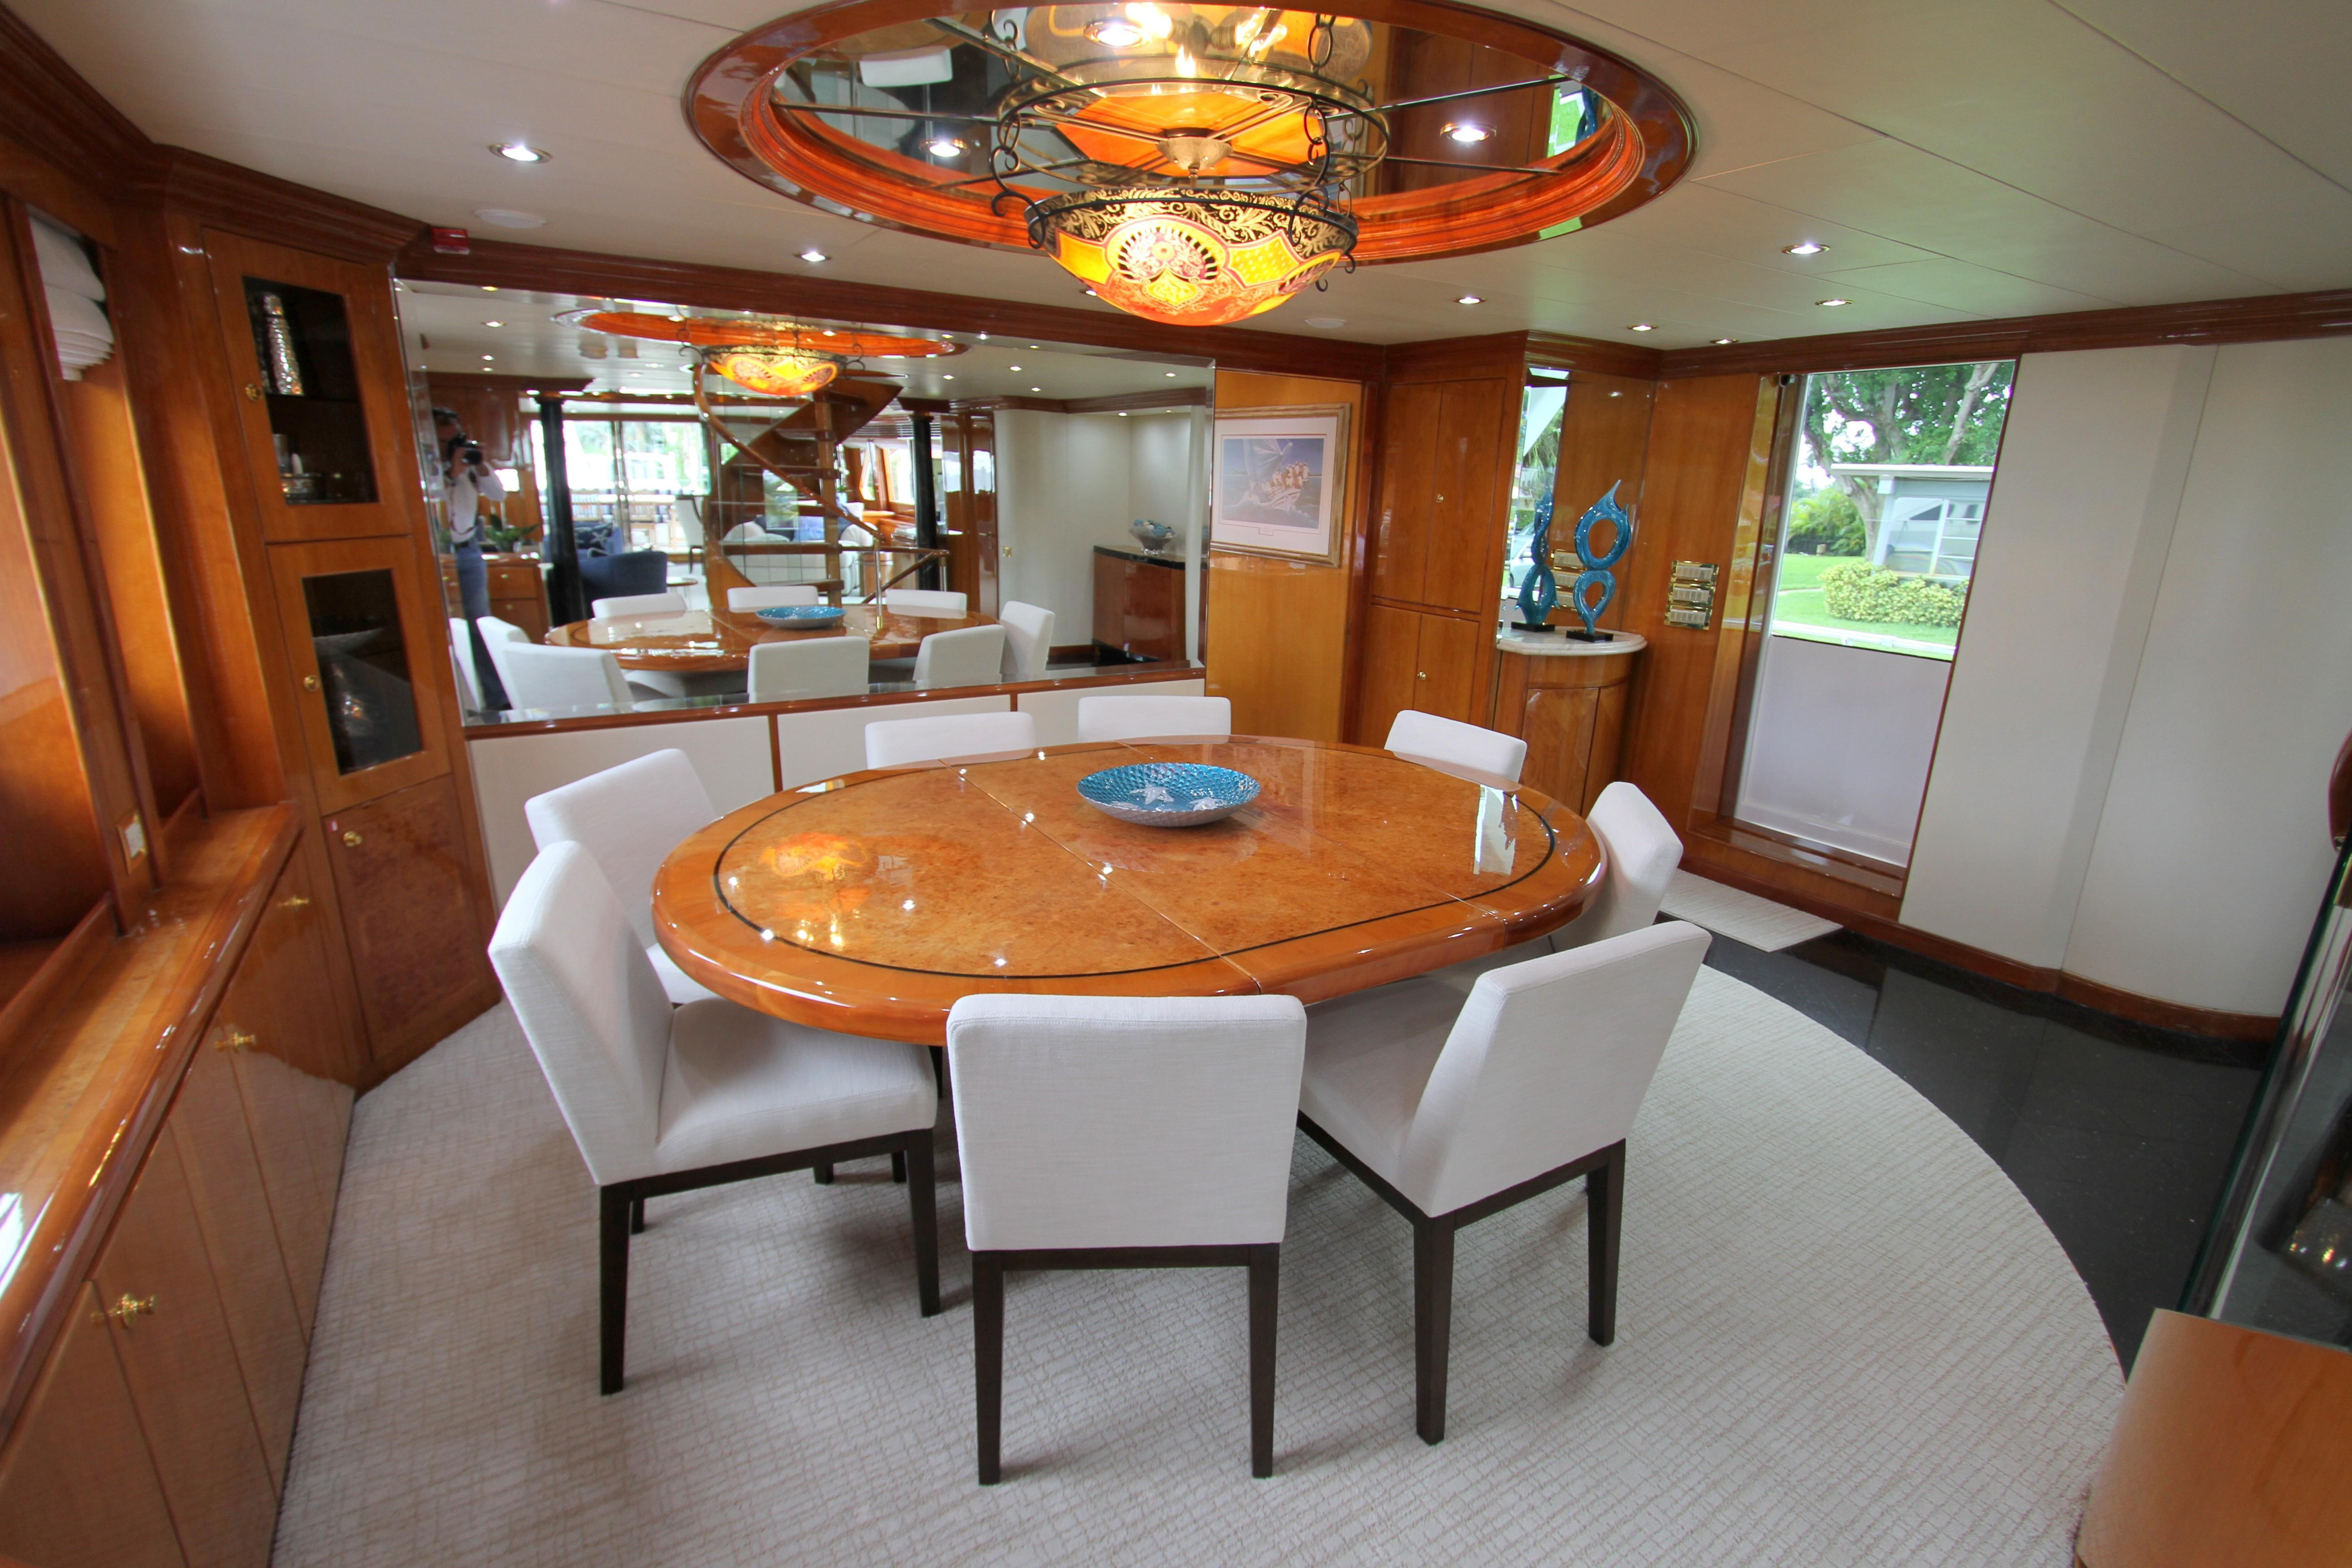 Sea Star Hargrave 2001 Tri-Deck 109 Yacht For Sale In Us for Mikelson Media Console Tables (Image 21 of 30)